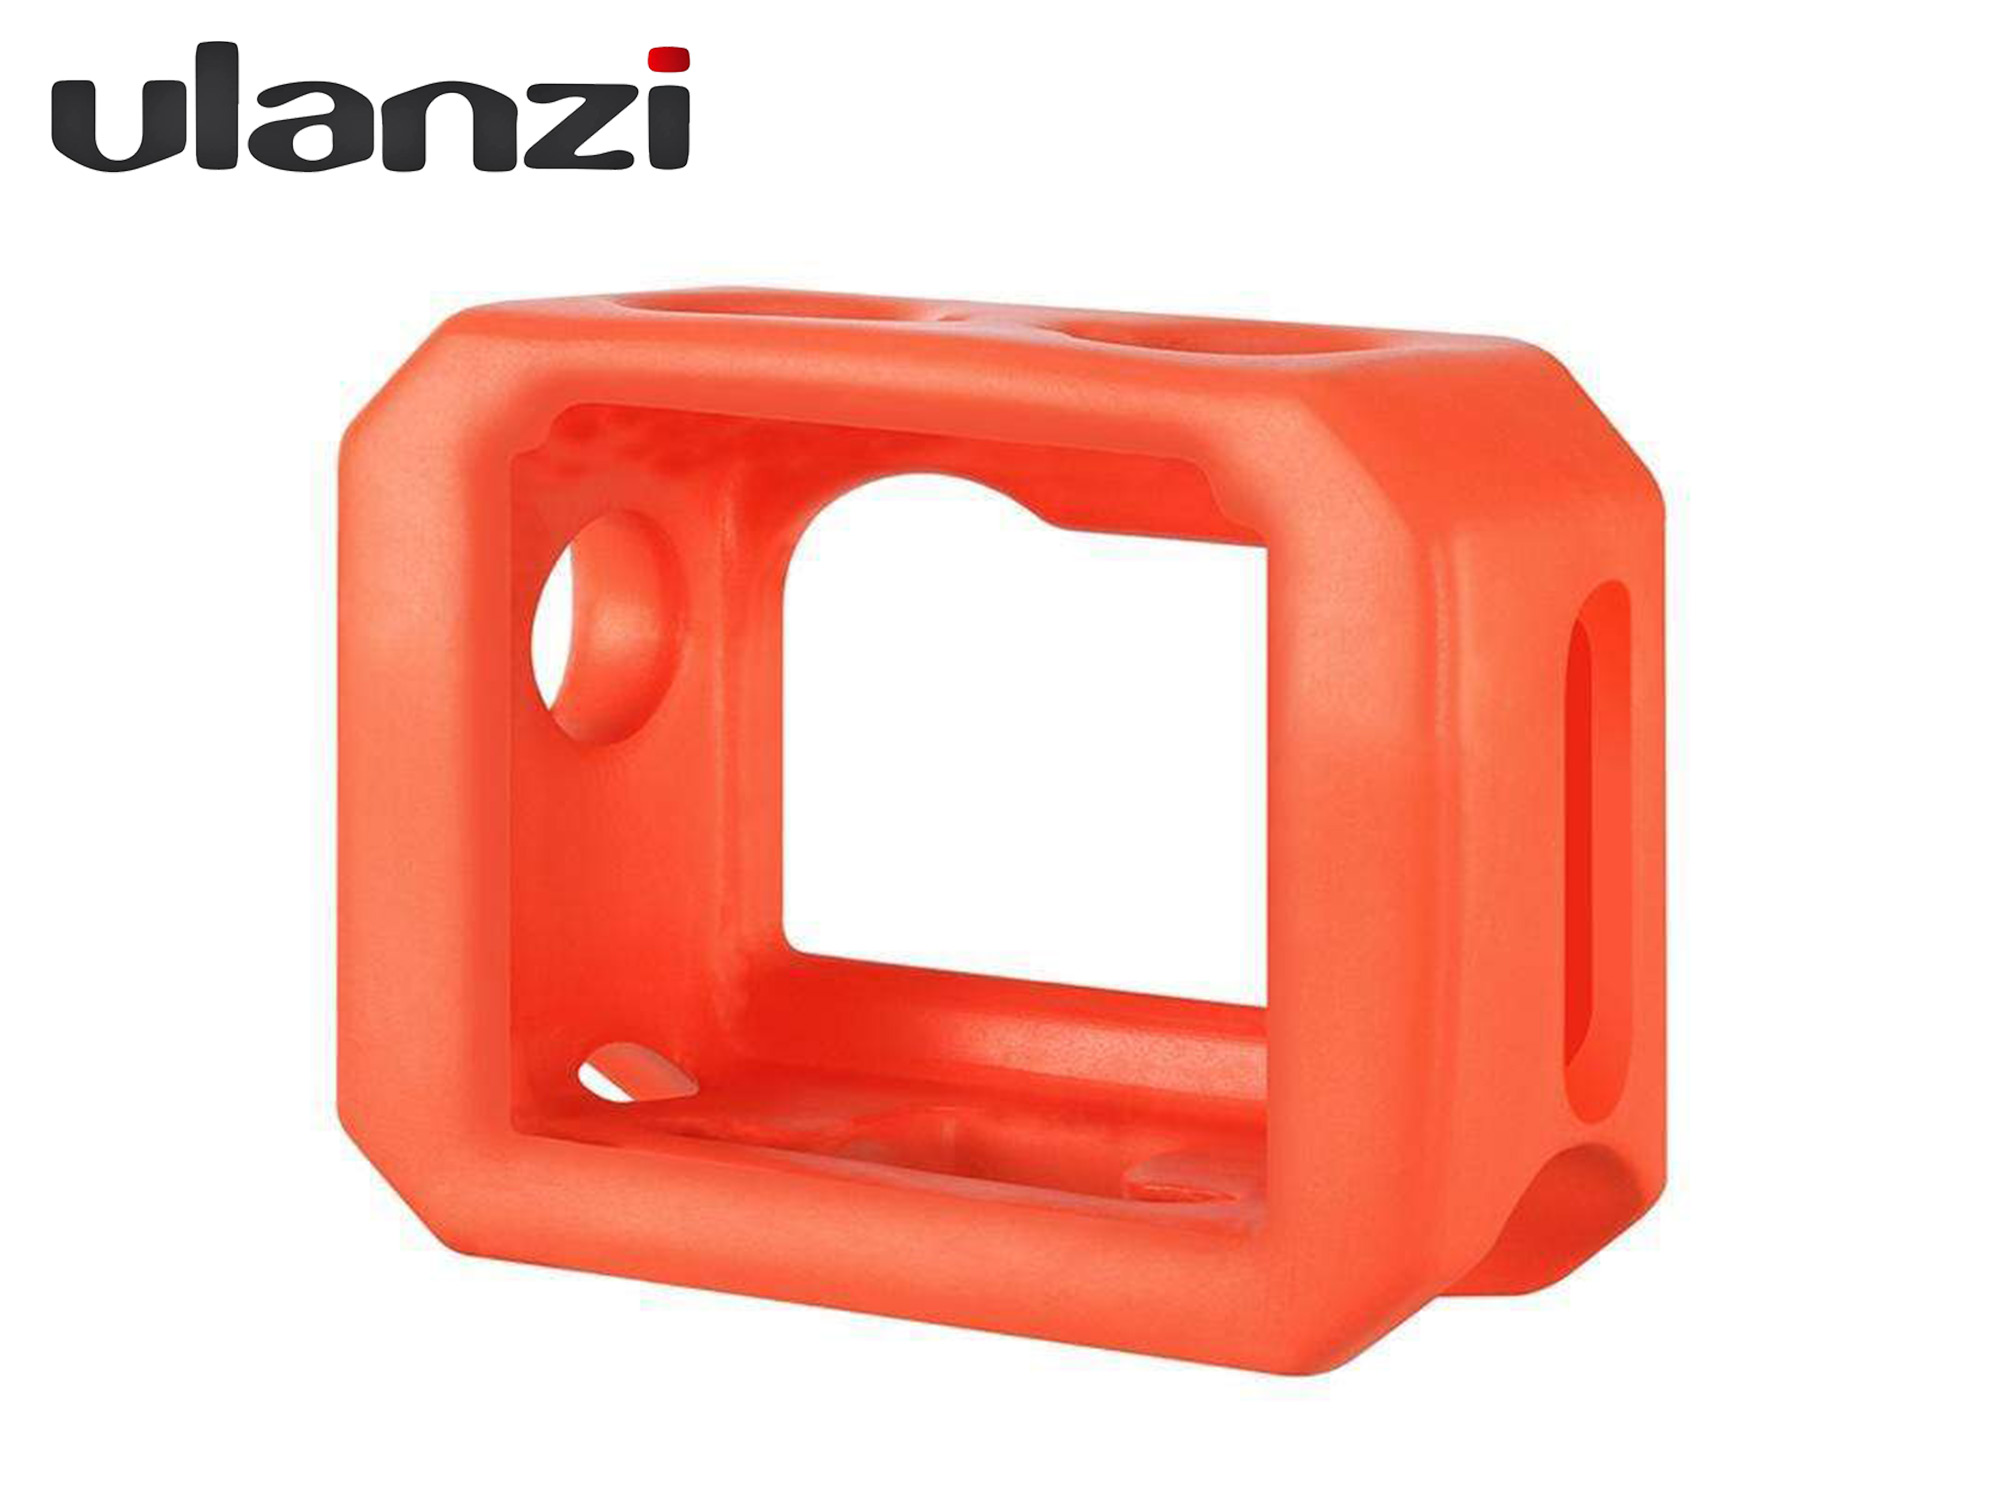 Ulanzi Osmo Action Floaty Housing Protective Case - Orange